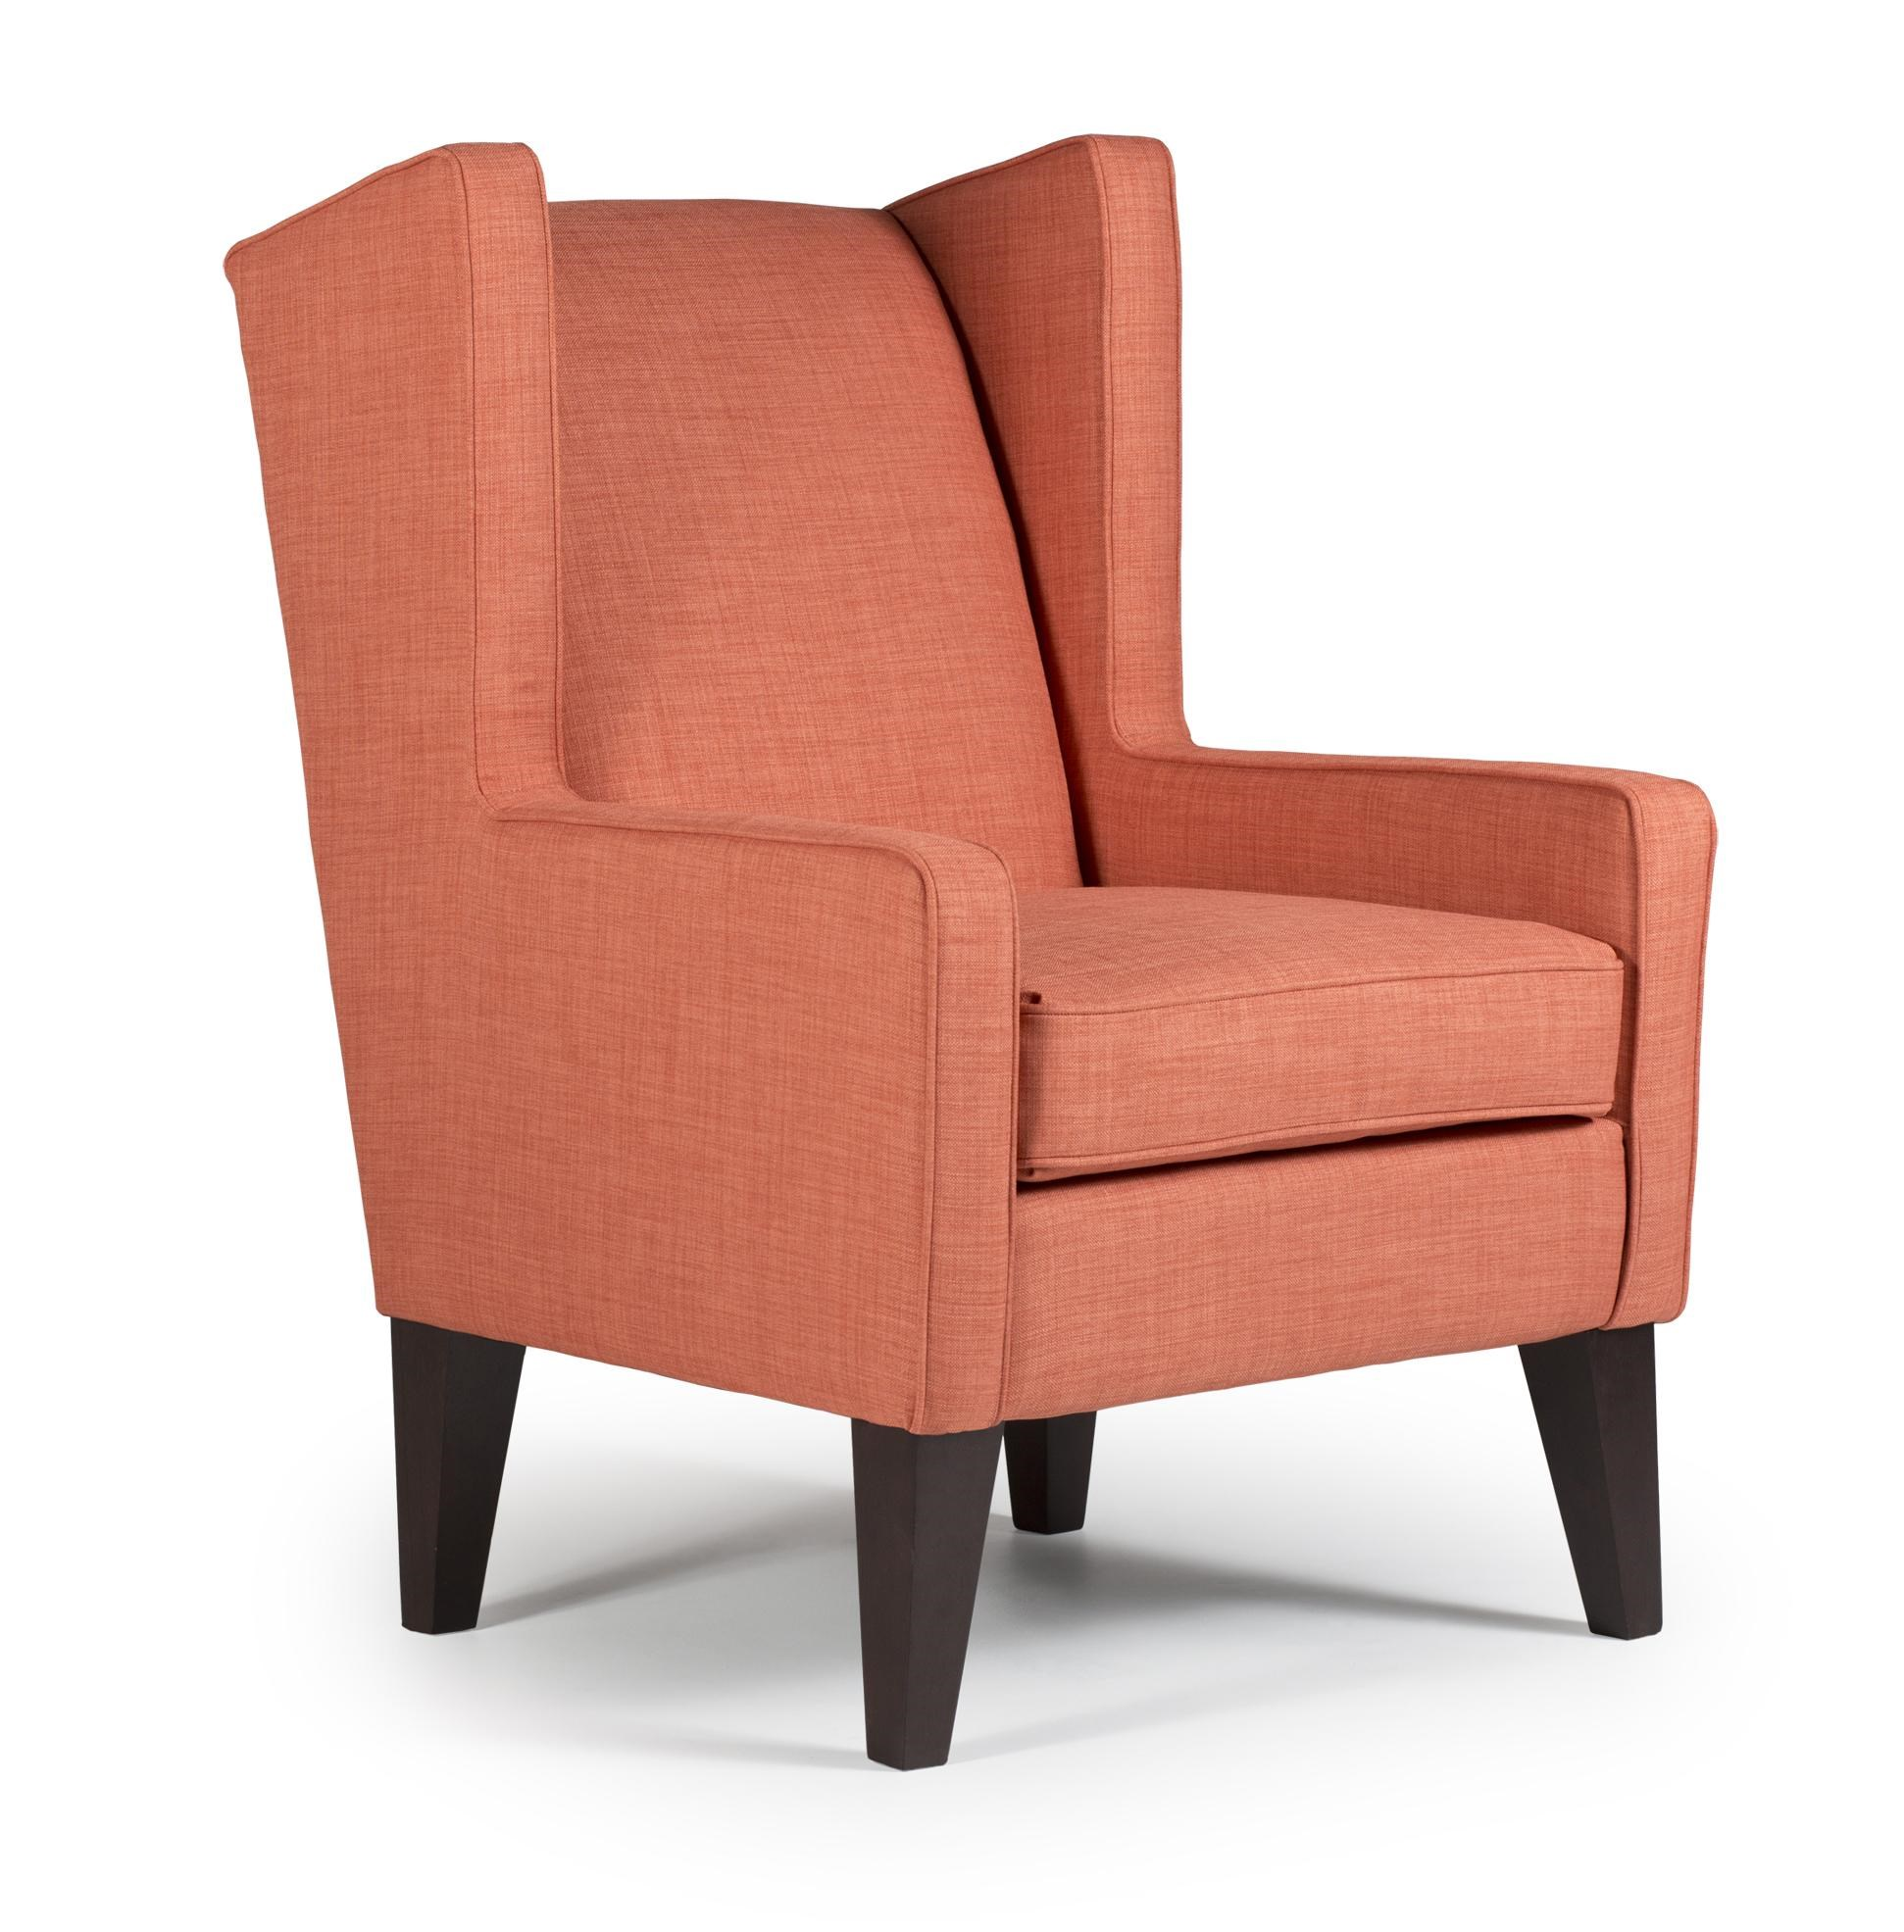 Best Home Furnishings Chairs Wing Back Wing Chair Hudson S Furniture Wing Chair Tampa St